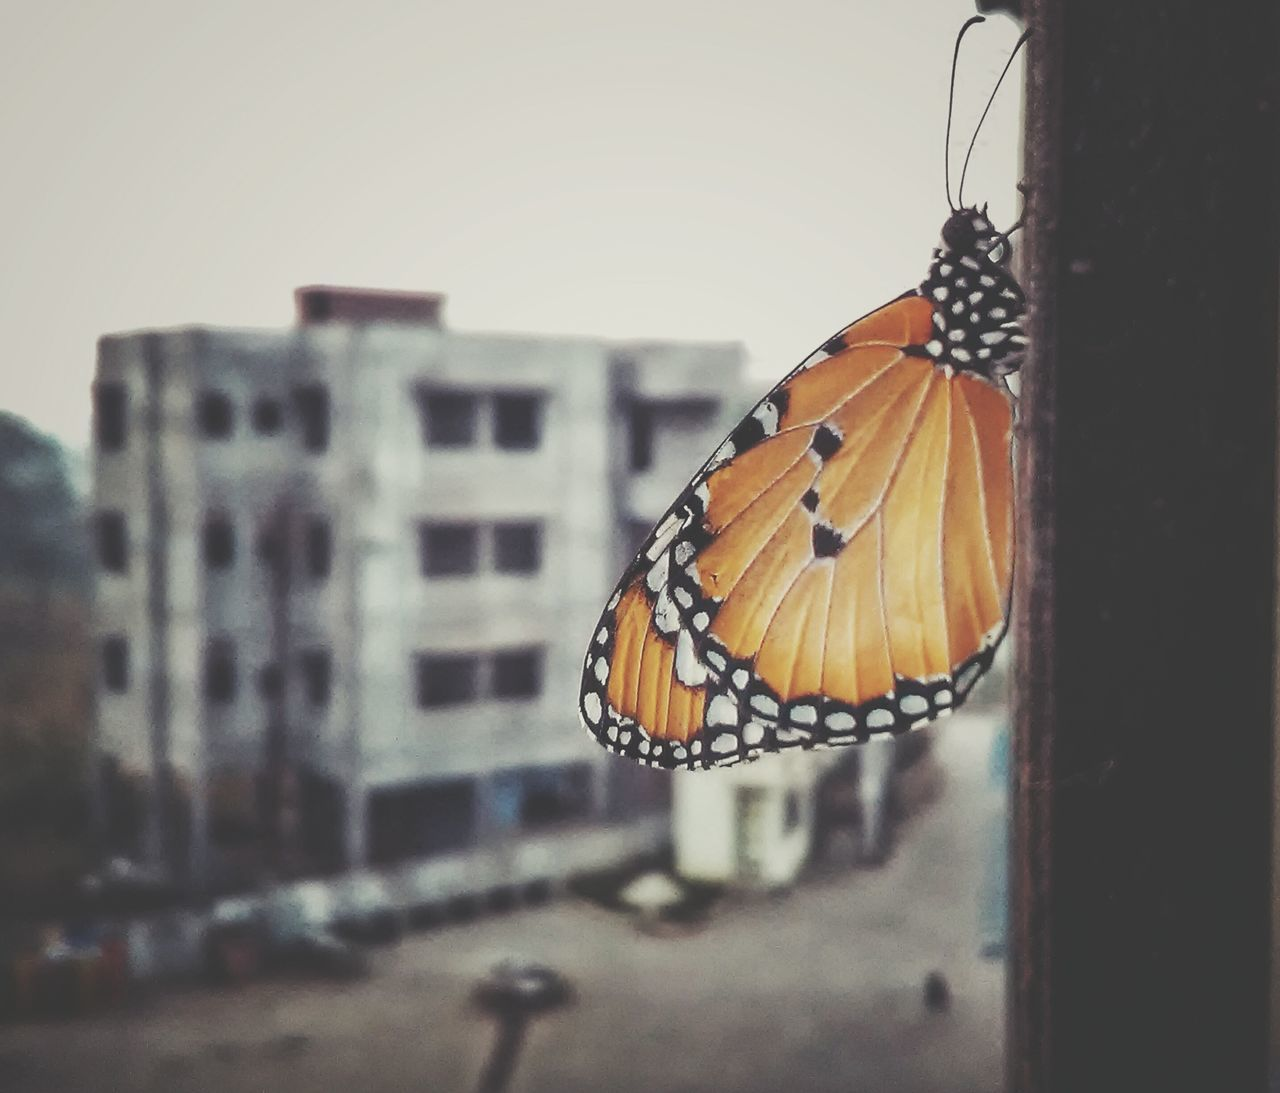 Animal Themes Butterfly - Insect One Animal Insect No People Nature Close-up Outdoors Day Morning Picture Wintertime Winteriscoming Butterfly Macro Butterfly Wings Butterfly ❤ AWESOME!!  Architecture Building Exterior Focus On Foreground Awesomeness Awesome_view Awesome_captures Freshness AWESOME!!